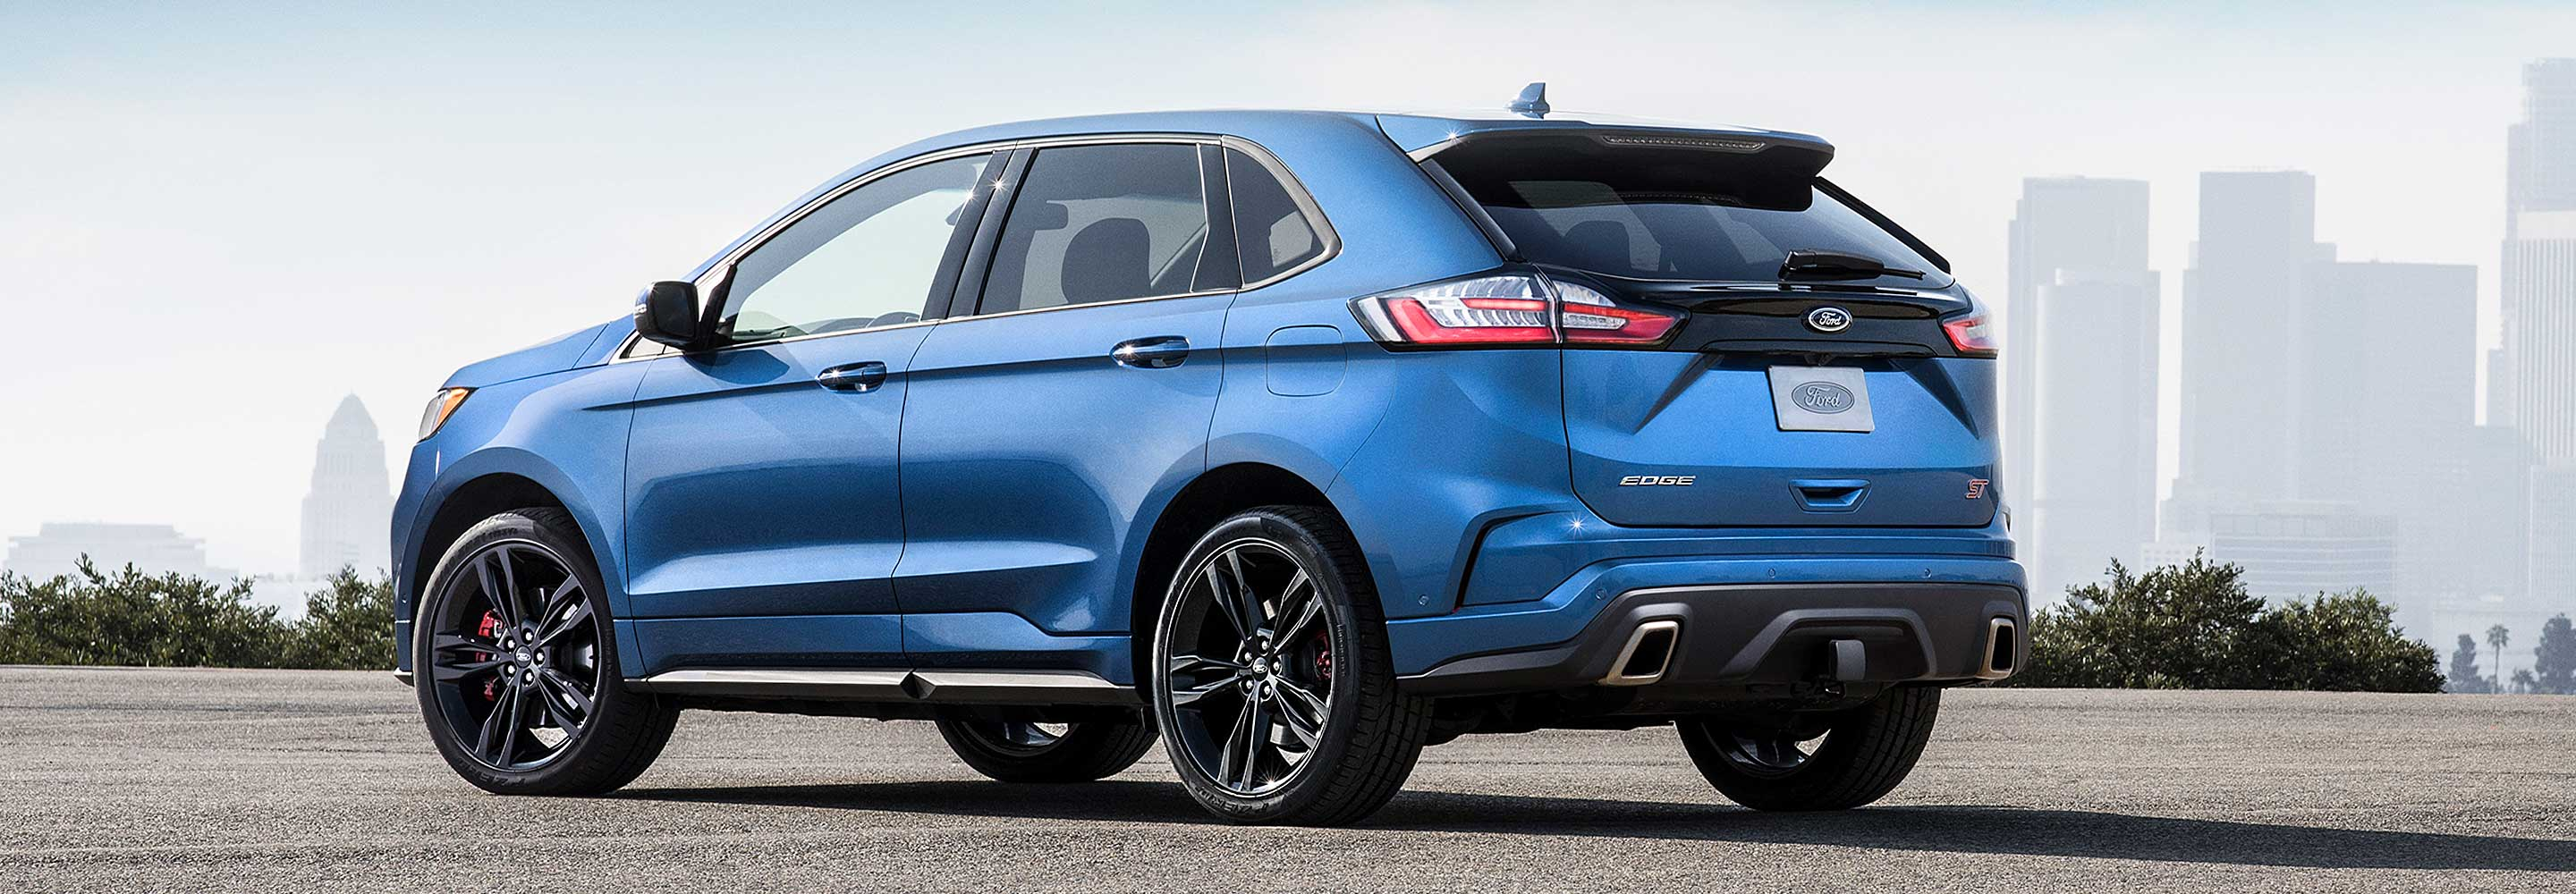 Introducing the 2020 Ford Edge ST-Line